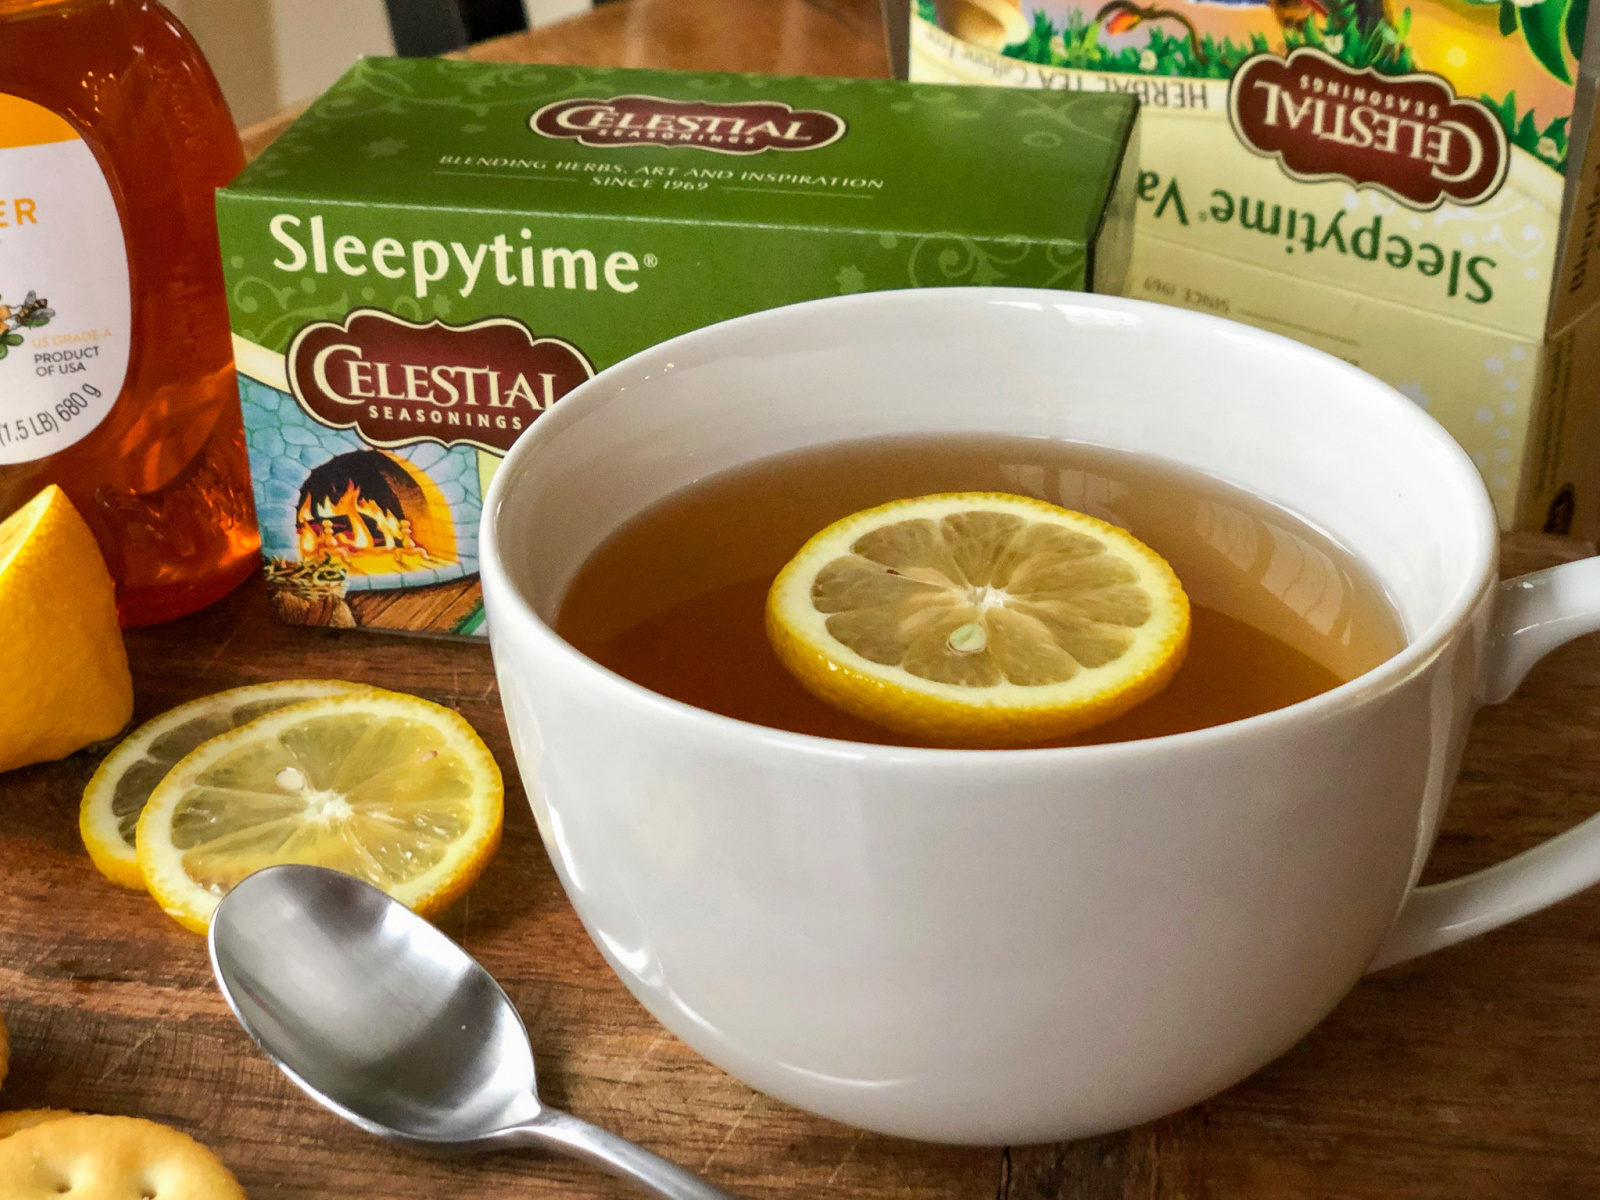 New Celestial Seasonings Tea Ibotta Makes Boxes As Low As 75¢ At Publix on I Heart Publix 3